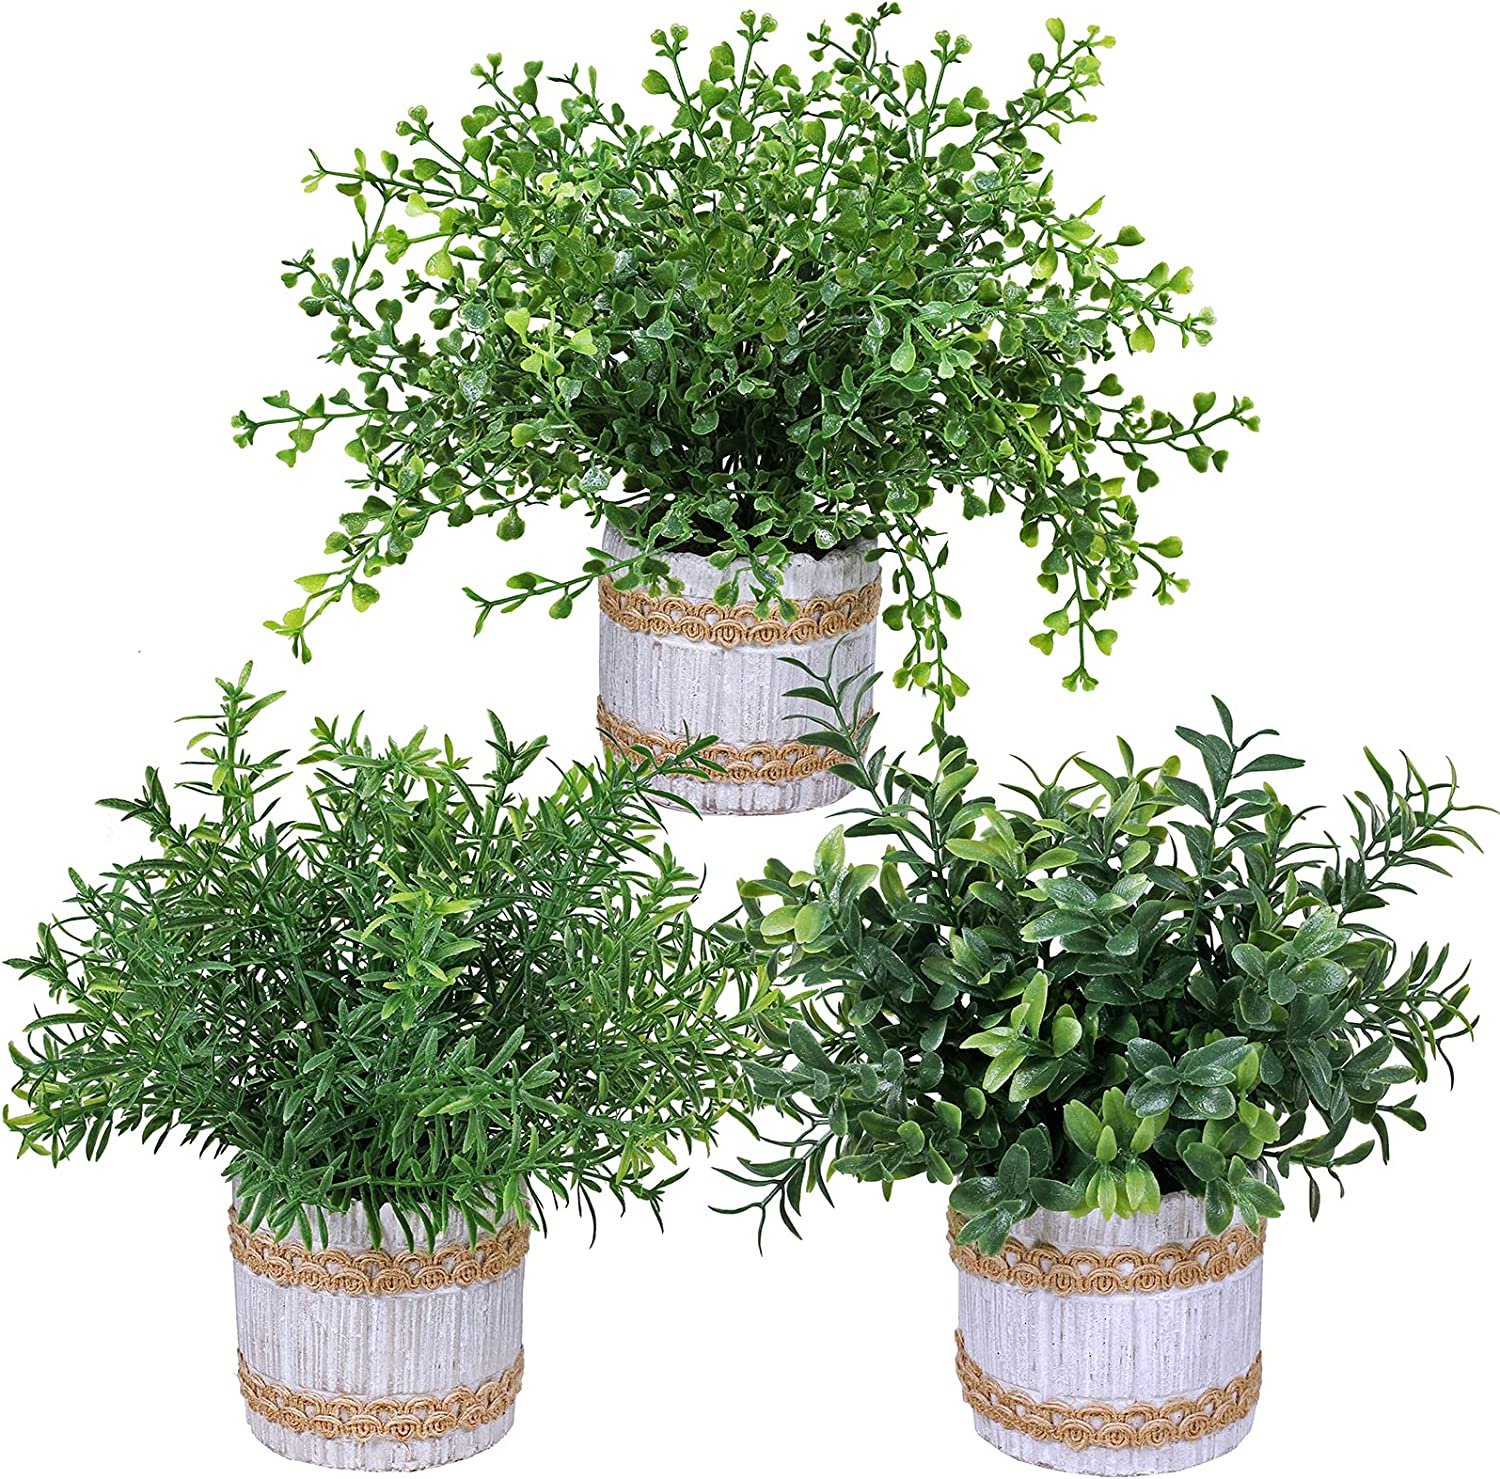 3 Pcs Artificial Plants Small Sale SALE% OFF Rosemar Potted Plastic Sales of SALE items from new works Fake